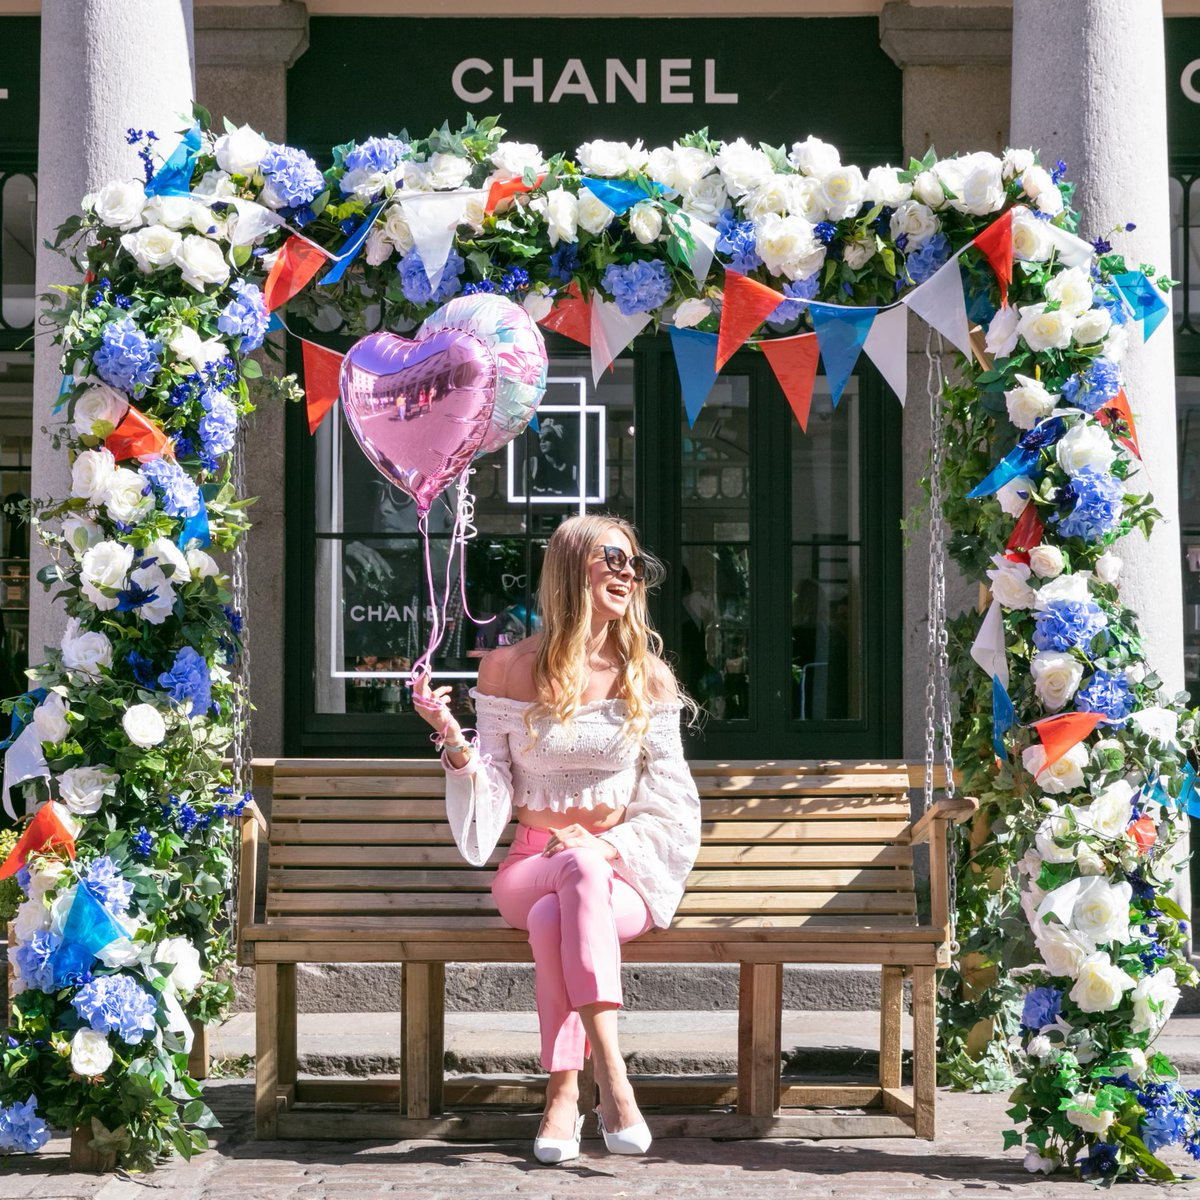 Coventgarden Insider On Twitter Whotravels And Ablondeflamingo Swung Into The Weekend Our Royalwedding Themed Fl Swing